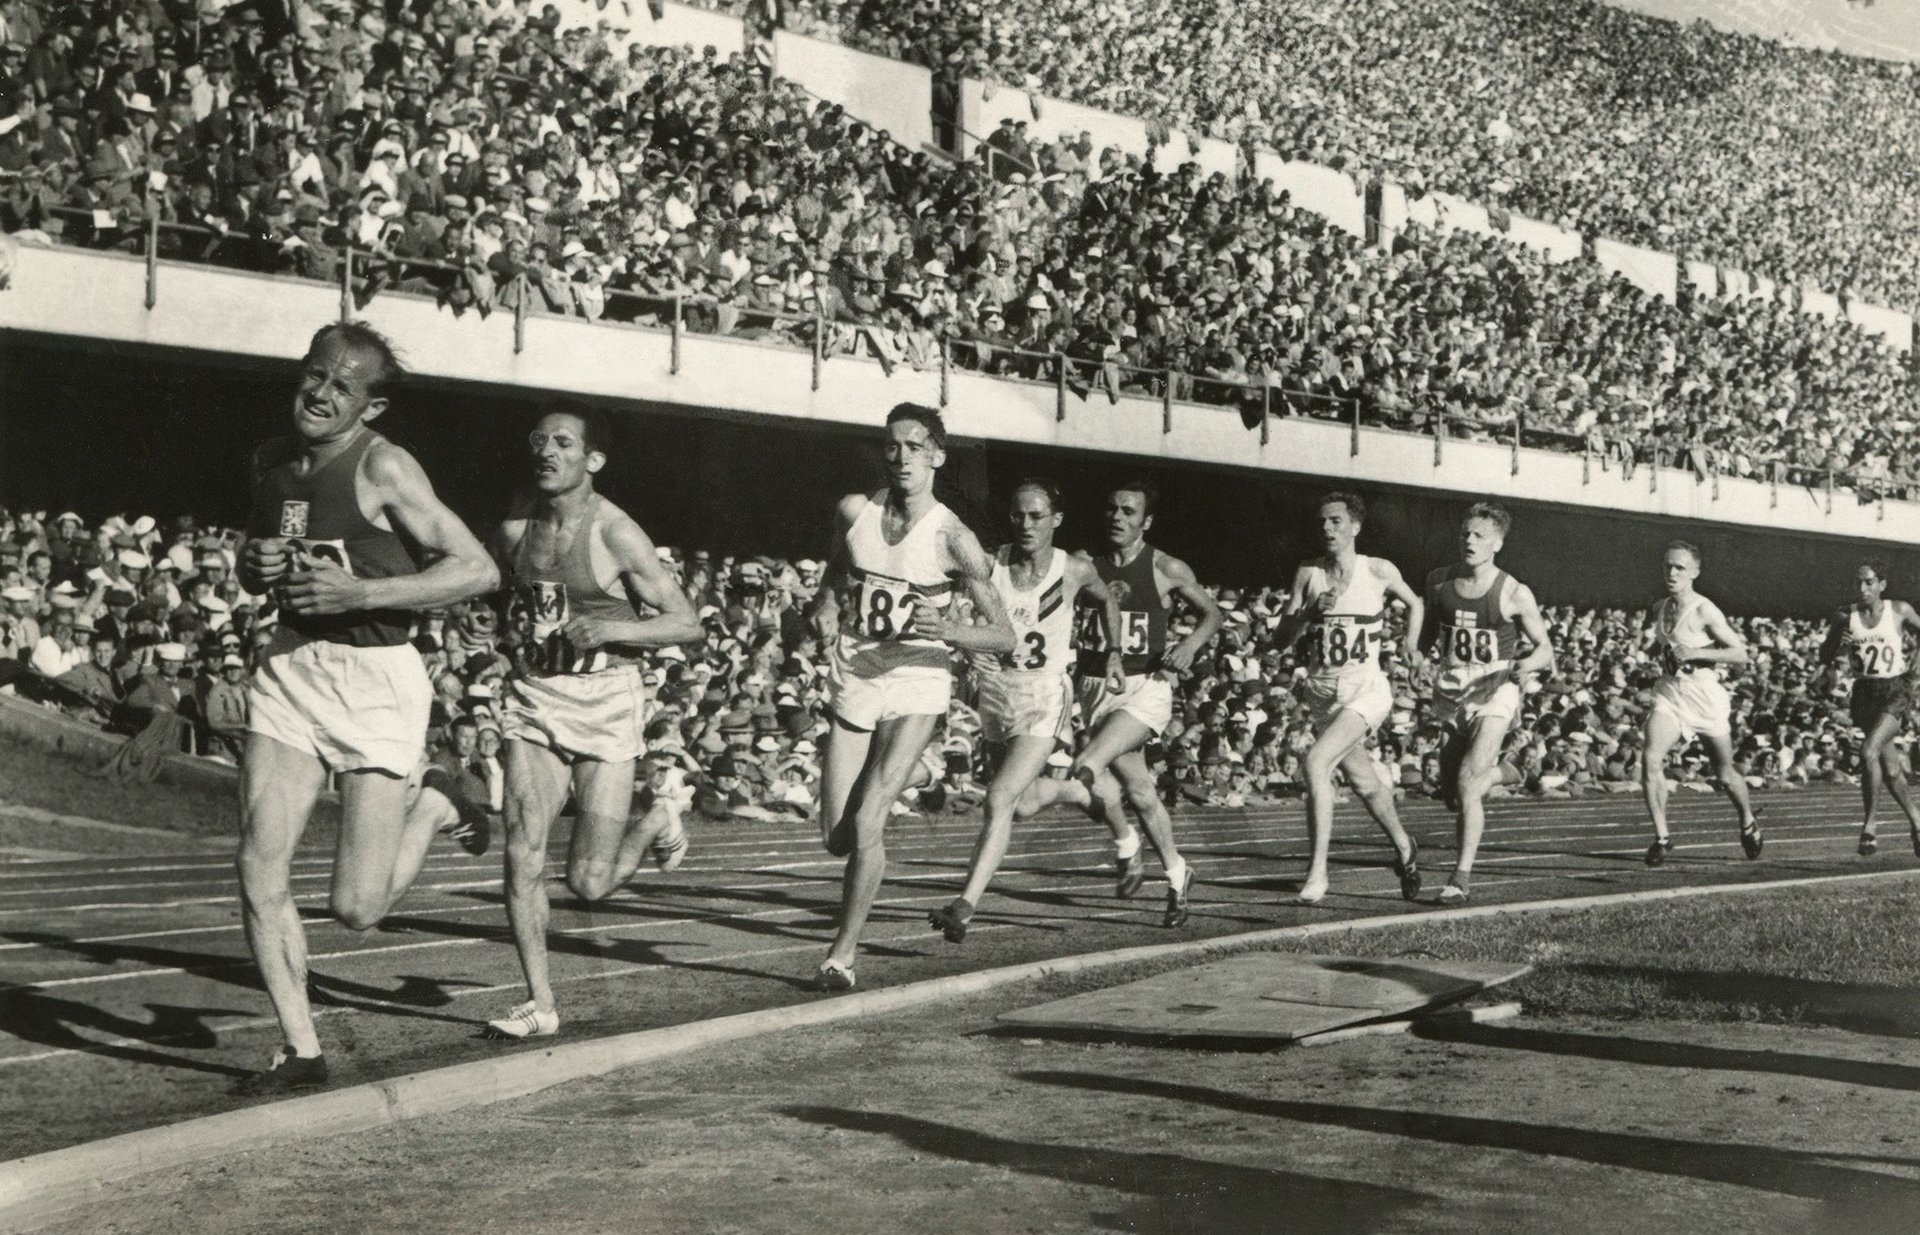 Photos Emil Zátopek [Tchécoslovaquie] en tête du 10.000 mètres, carte-photo, 1952.